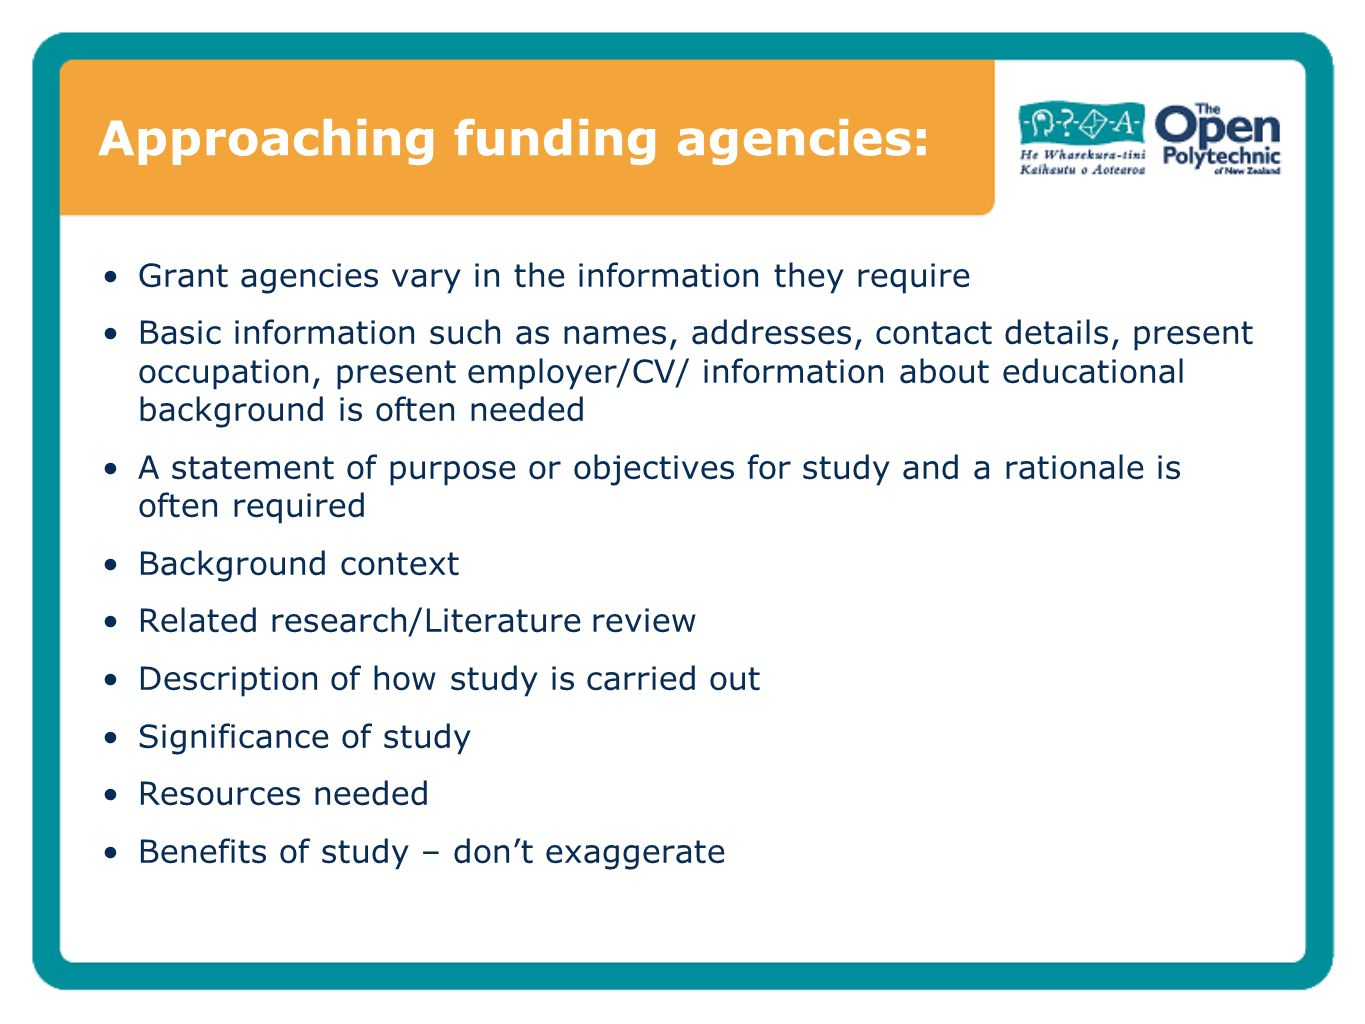 Approaching funding agencies: Grant agencies vary in the information they require Basic information such as names, addresses, contact details, present occupation, present employer/CV/ information about educational background is often needed A statement of purpose or objectives for study and a rationale is often required Background context Related research/Literature review Description of how study is carried out Significance of study Resources needed Benefits of study – don't exaggerate